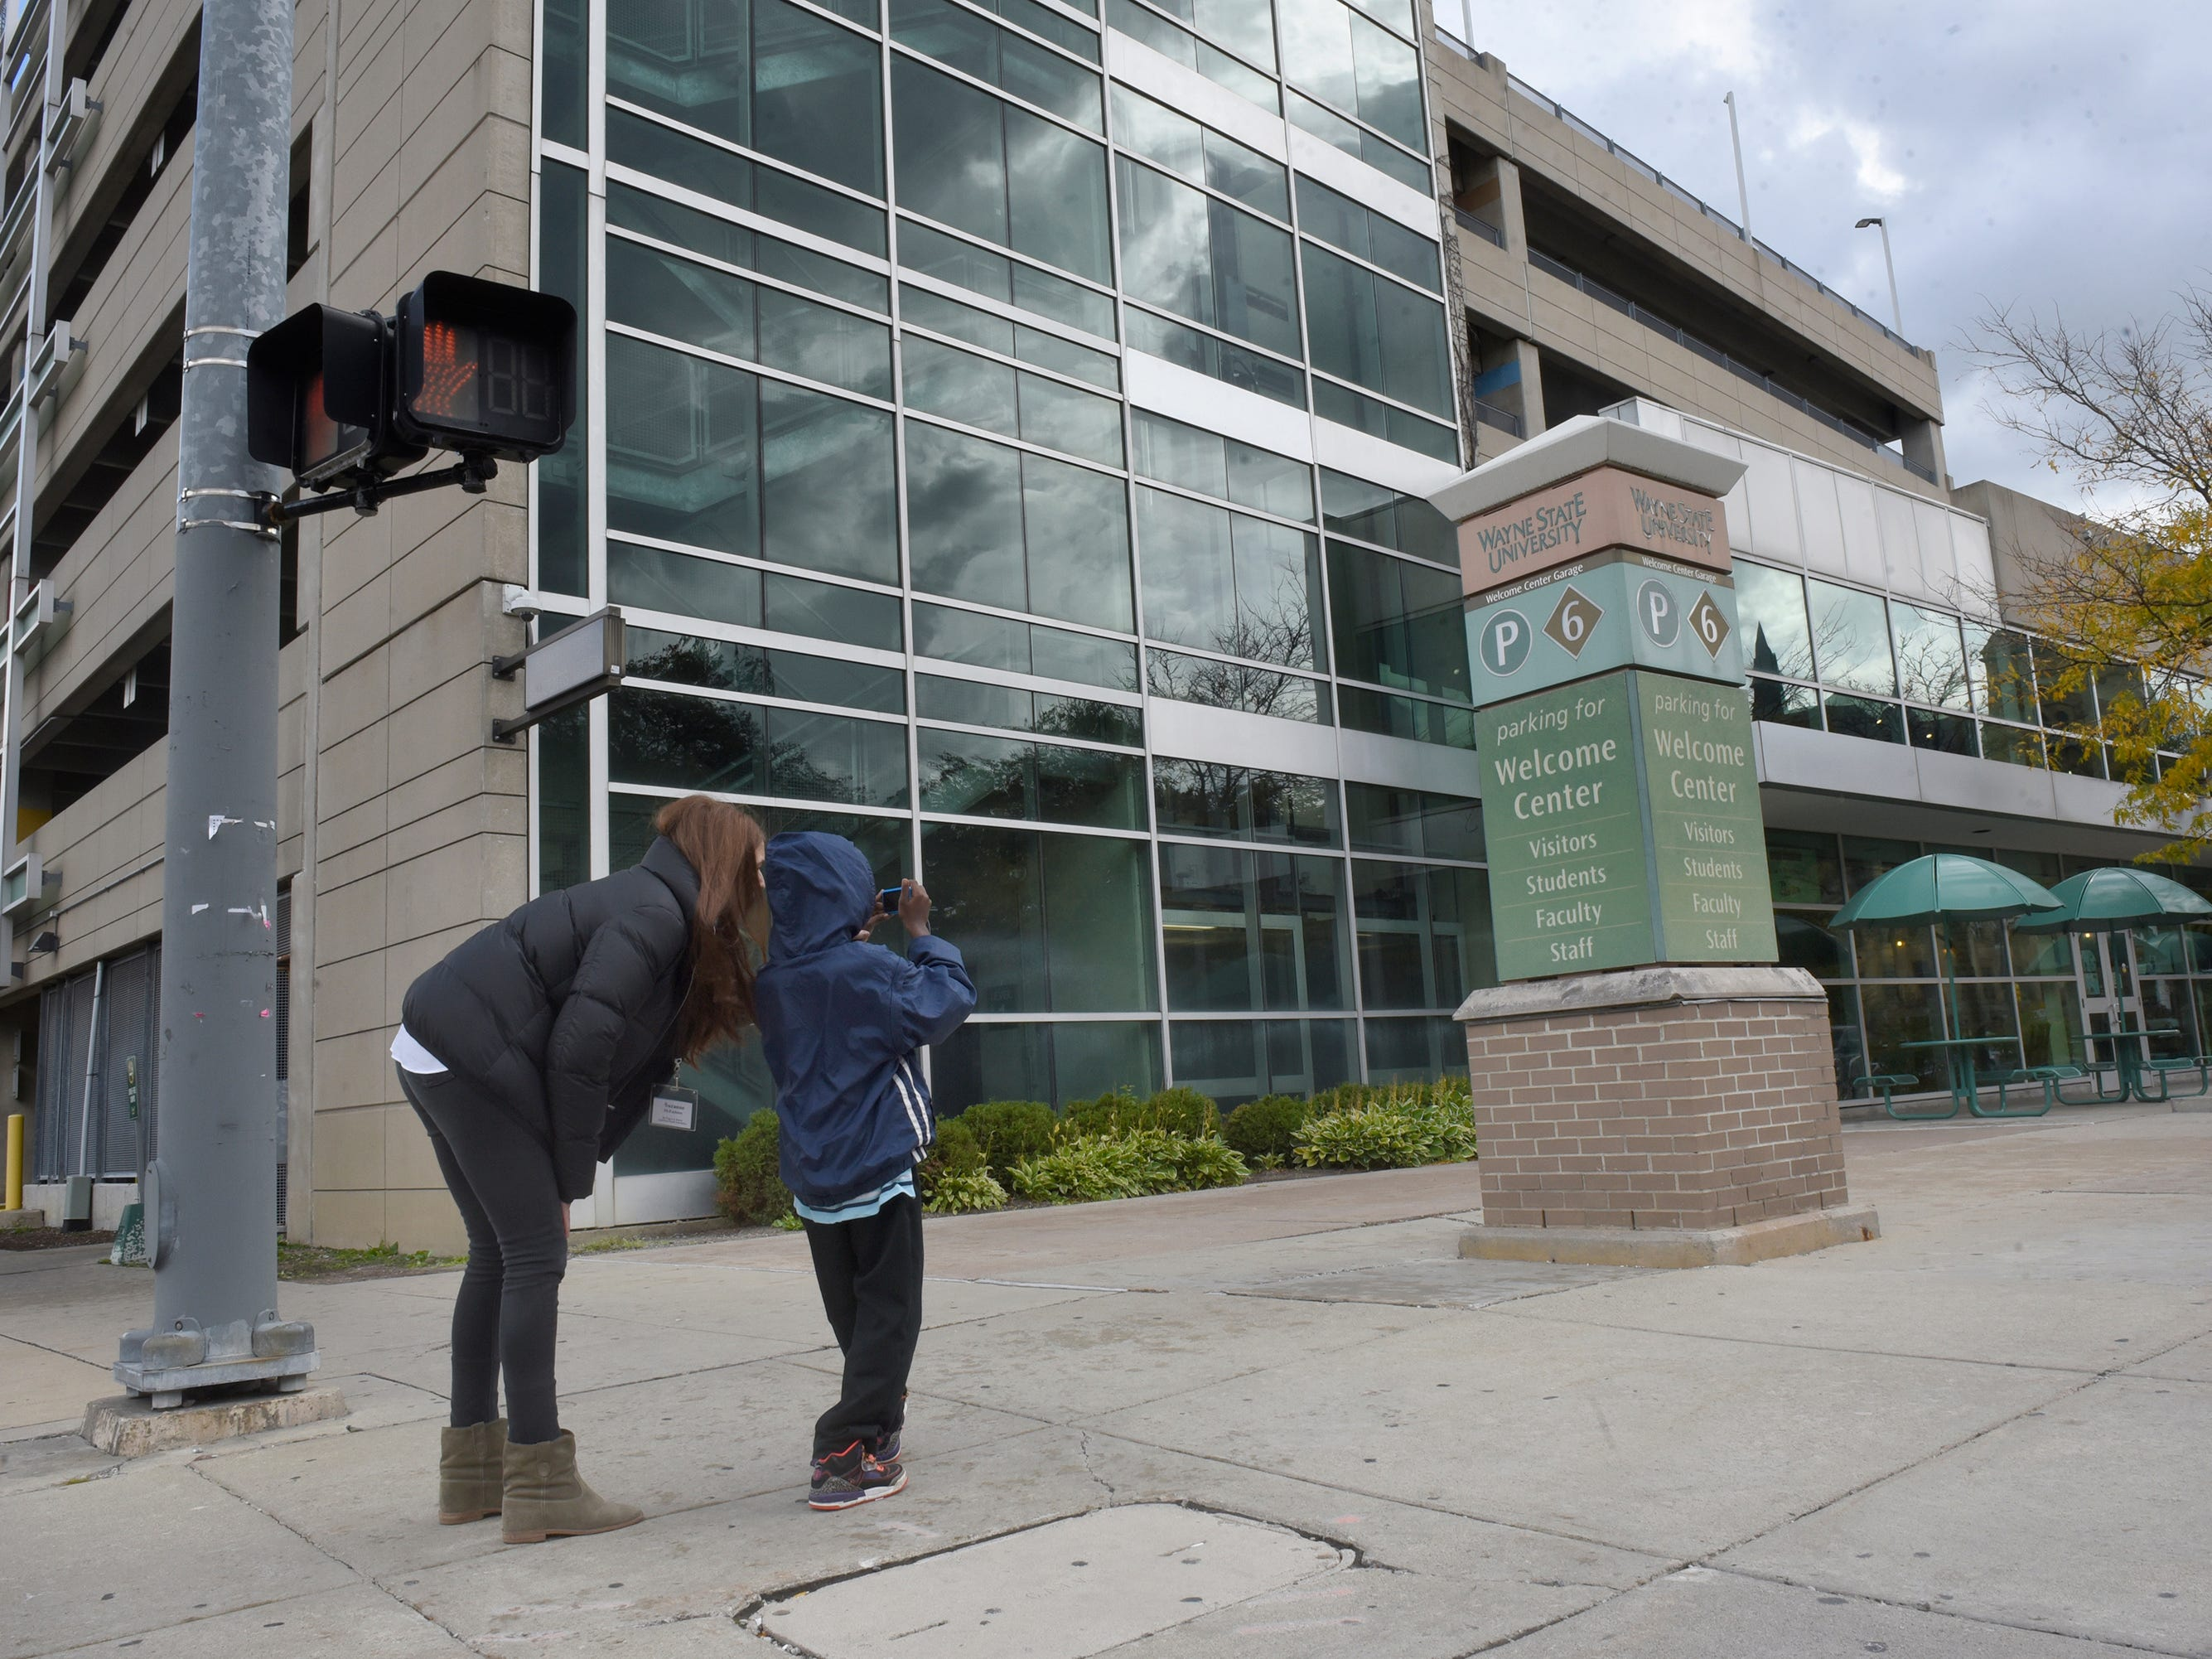 Suzanne McEachern helps Ethan photograph a sign at Wayne State University.